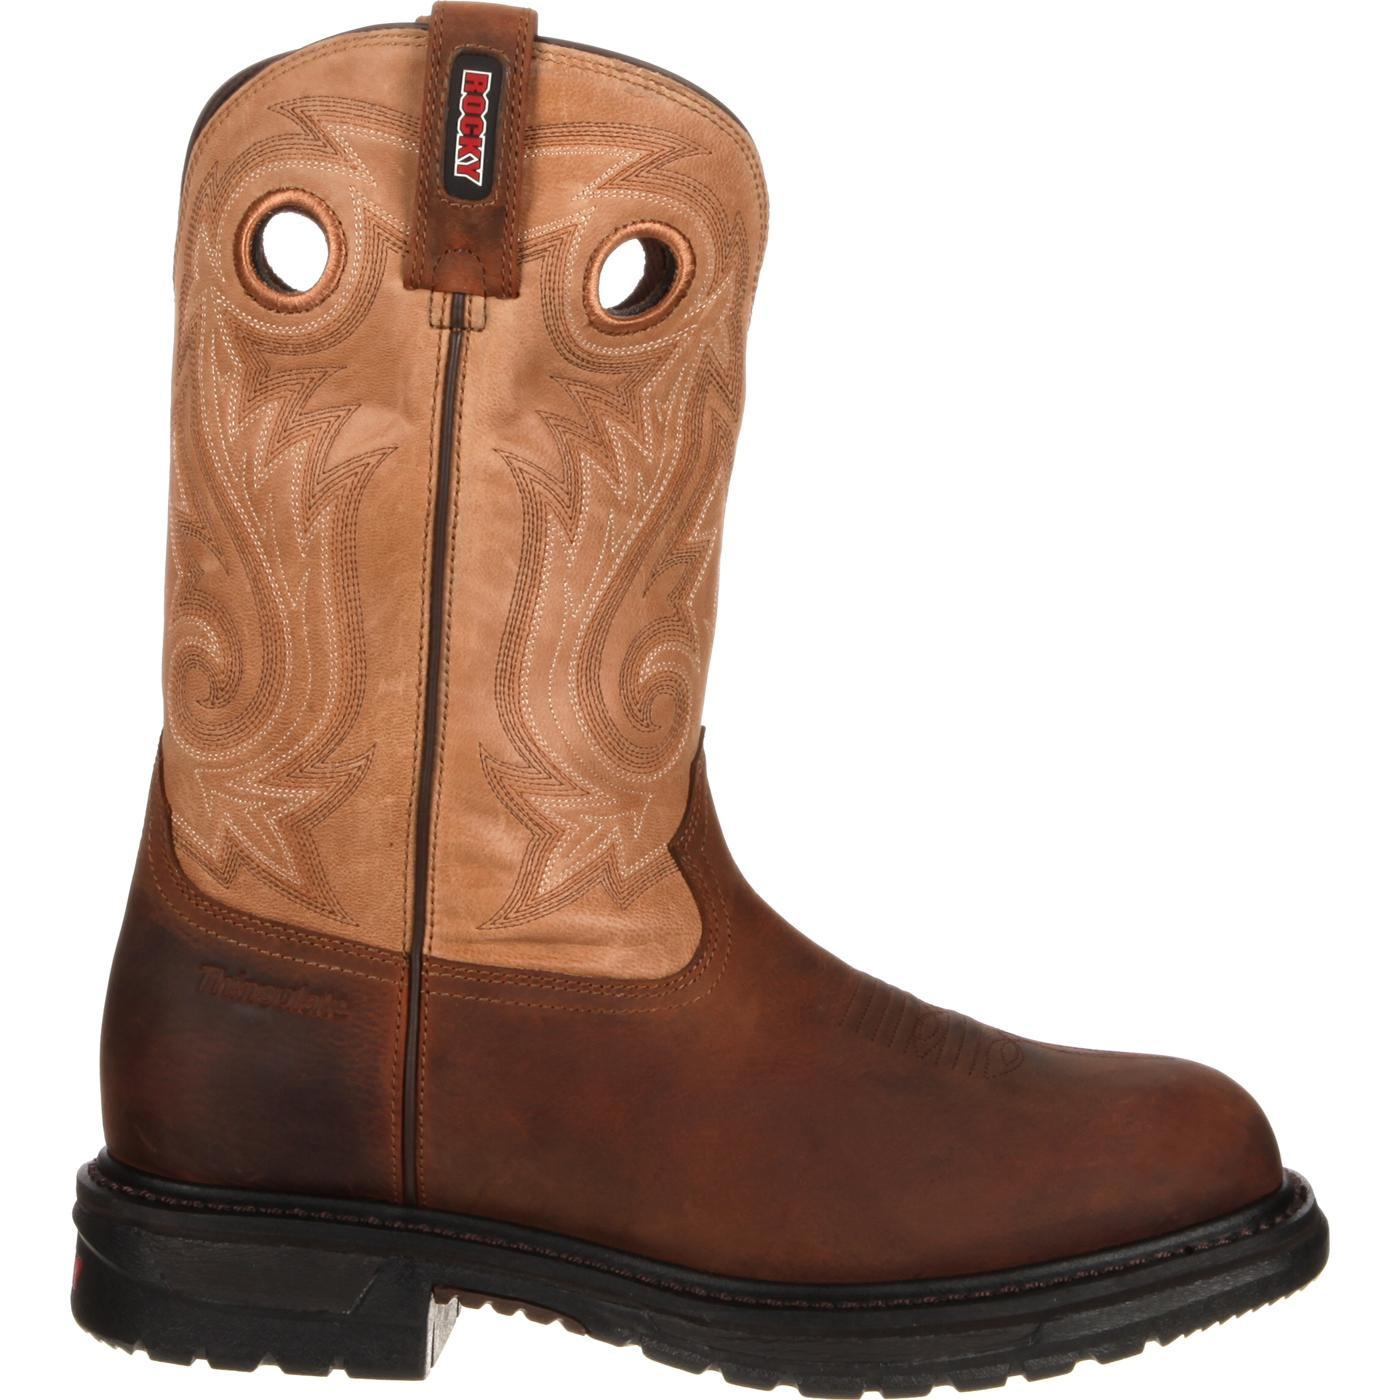 Rocky Original Ride Insulated Waterproof Western Boot, RKW0099